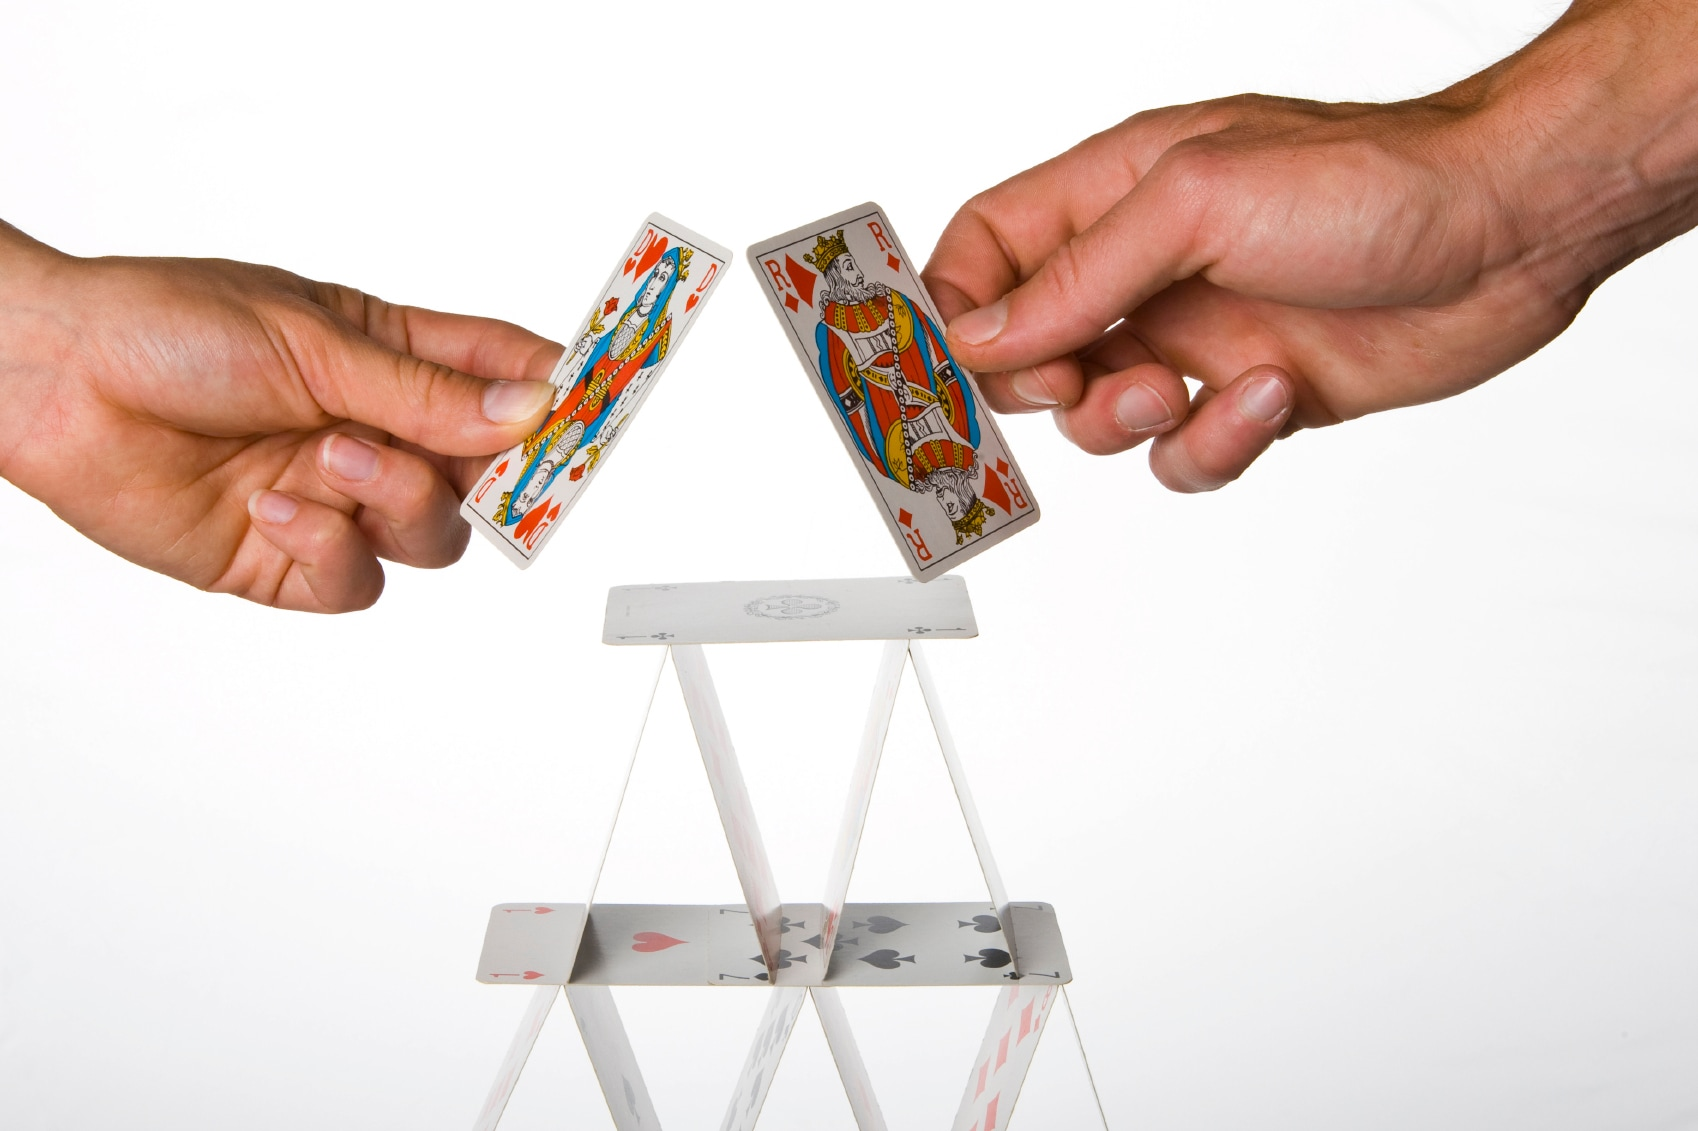 Building of a house of cards